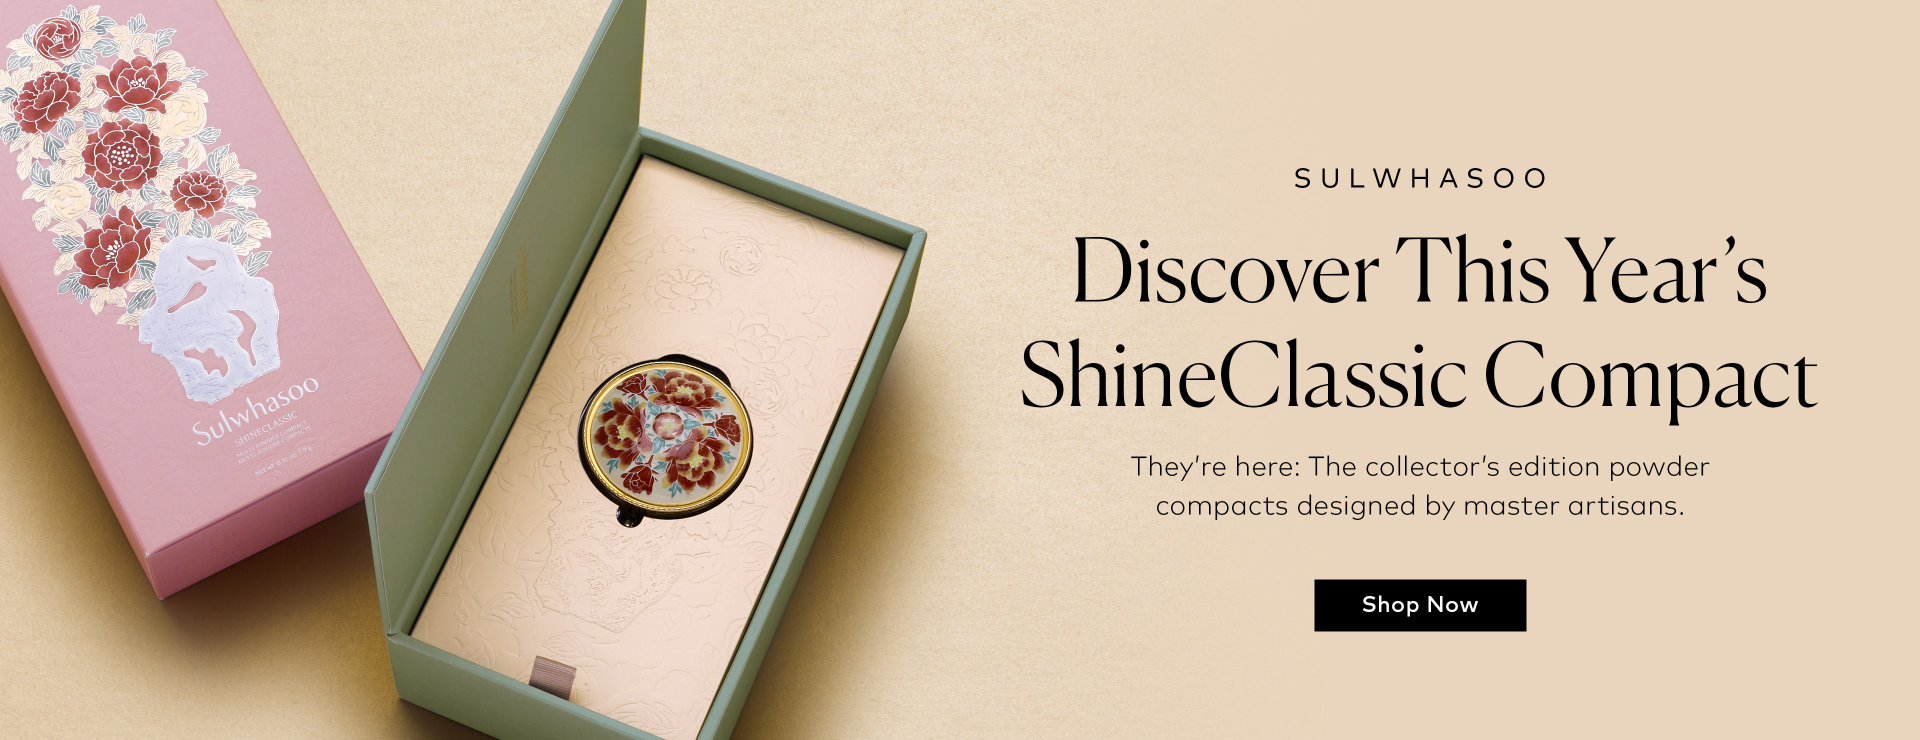 Shop Sulwhasoo's ShineClassic Compacts on Beautylish.com